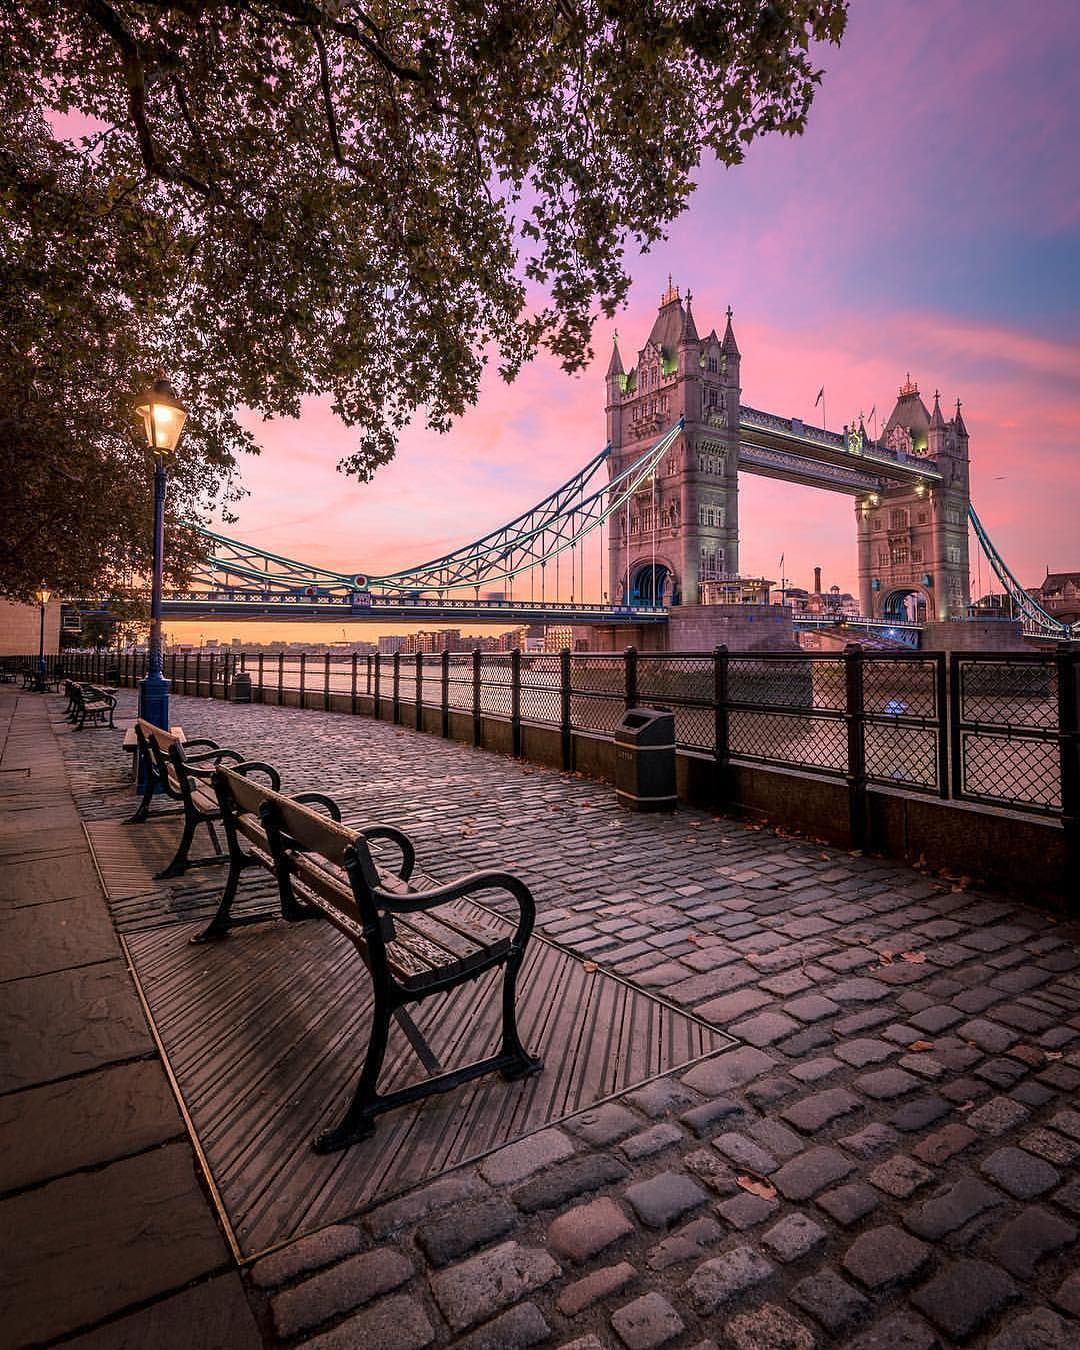 Photos Of Britain On Instagram Who Would You Love To Sit On This London Bench With Love This Early Morni London Photos Travel Photography London Travel